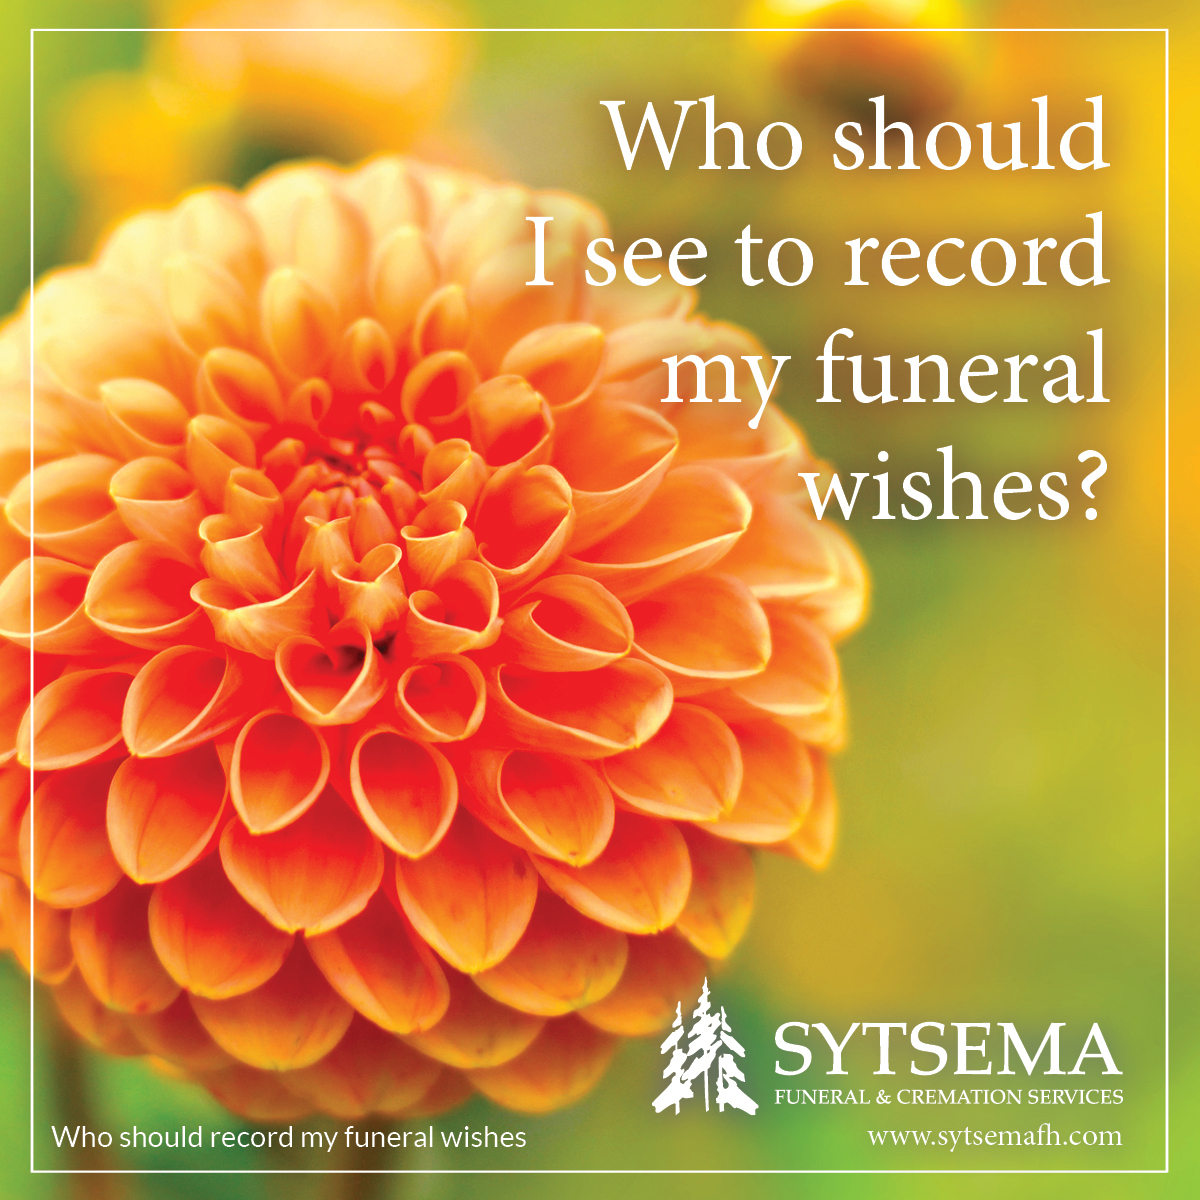 Who should record my funeral wishes?